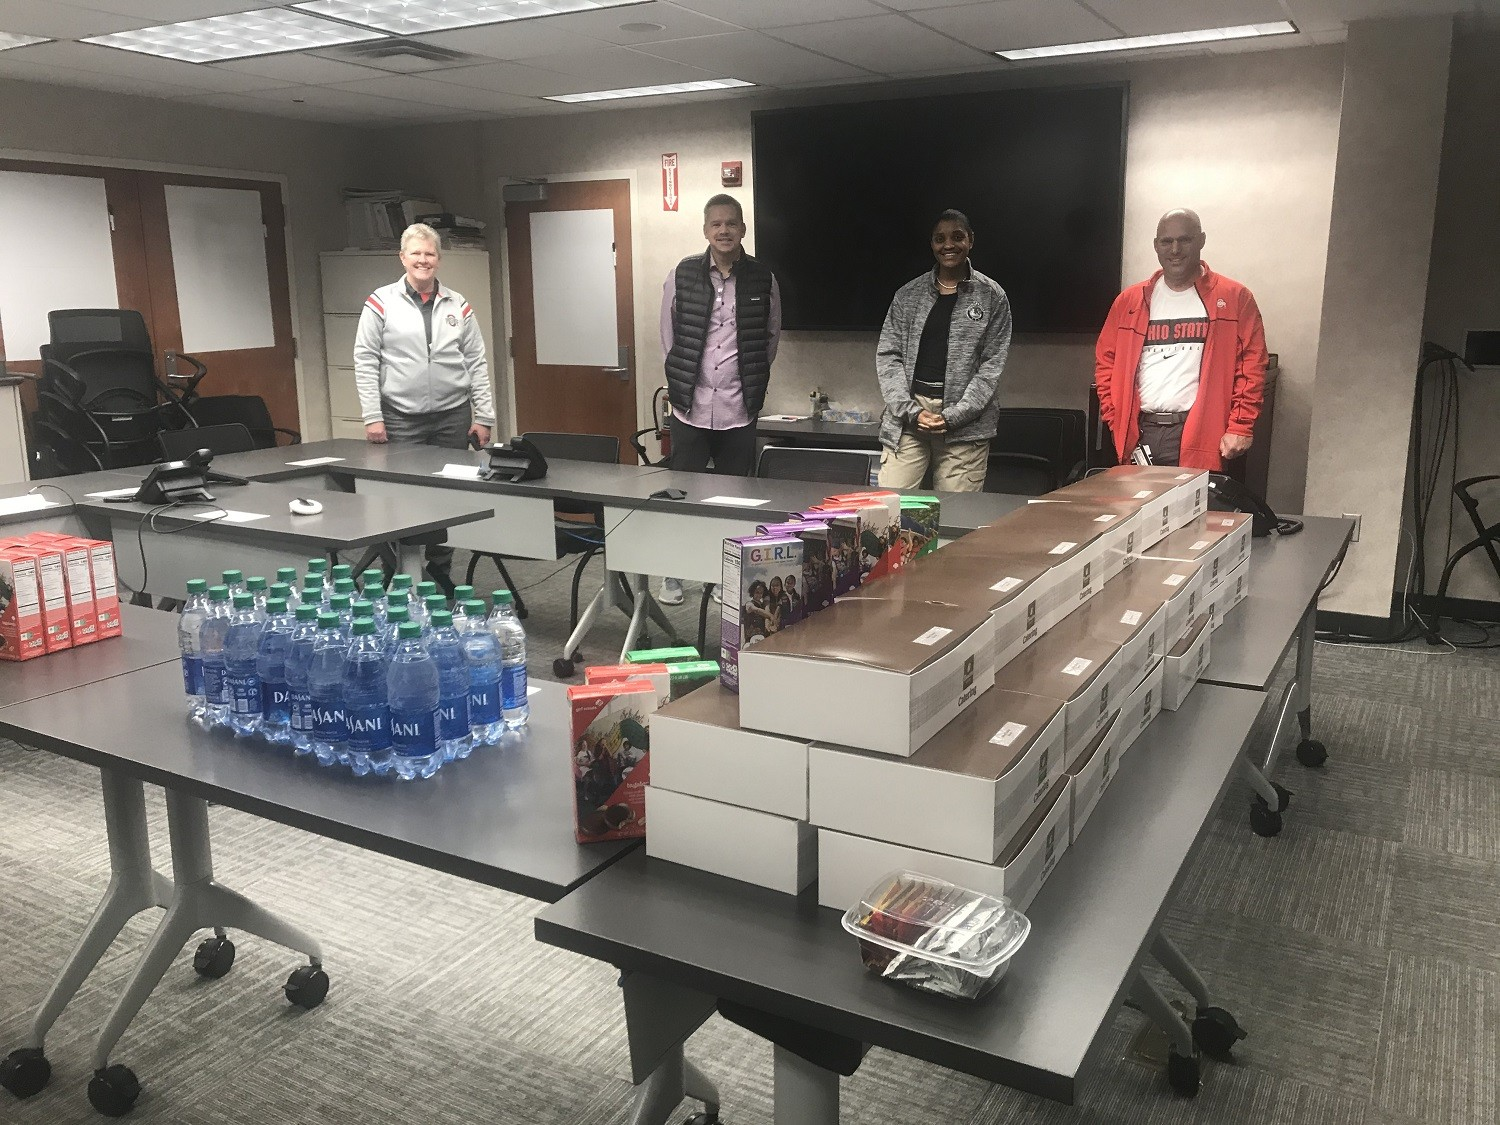 Ohio State basketball coach Chris Holtmann delivers lunch to public safety staff